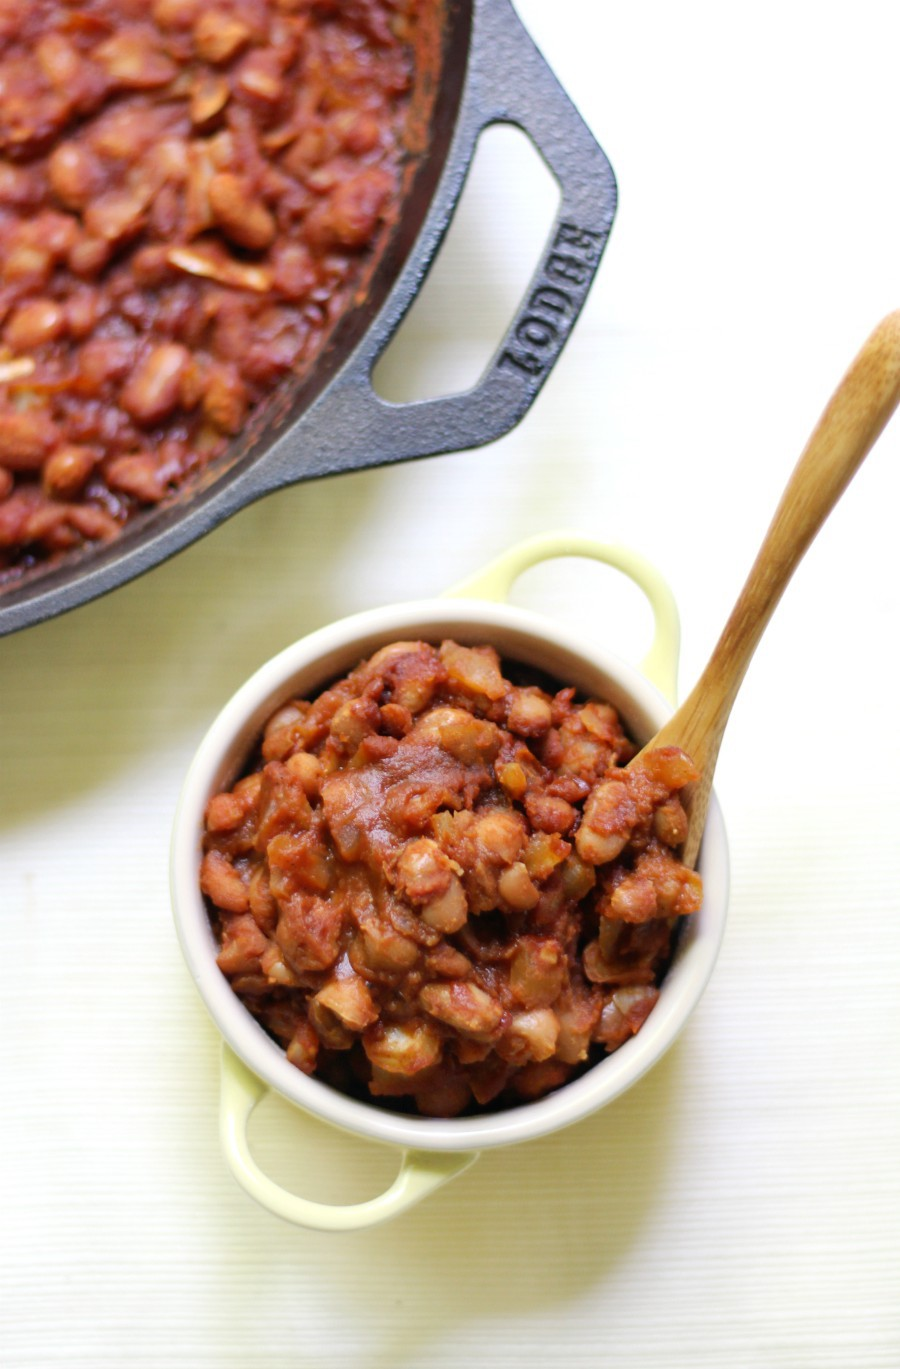 Old-Fashioned Vegan Baked Beans (Gluten-Free, Allergy-Free) | Strength and Sunshine @RebeccaGF666 Just like grandma used to make! This is the best Old-Fashioned Vegan Baked Beans recipe! They're sweet, smoky, gluten-free, top 8 allergy-free, and baked right in your cast iron skillet!